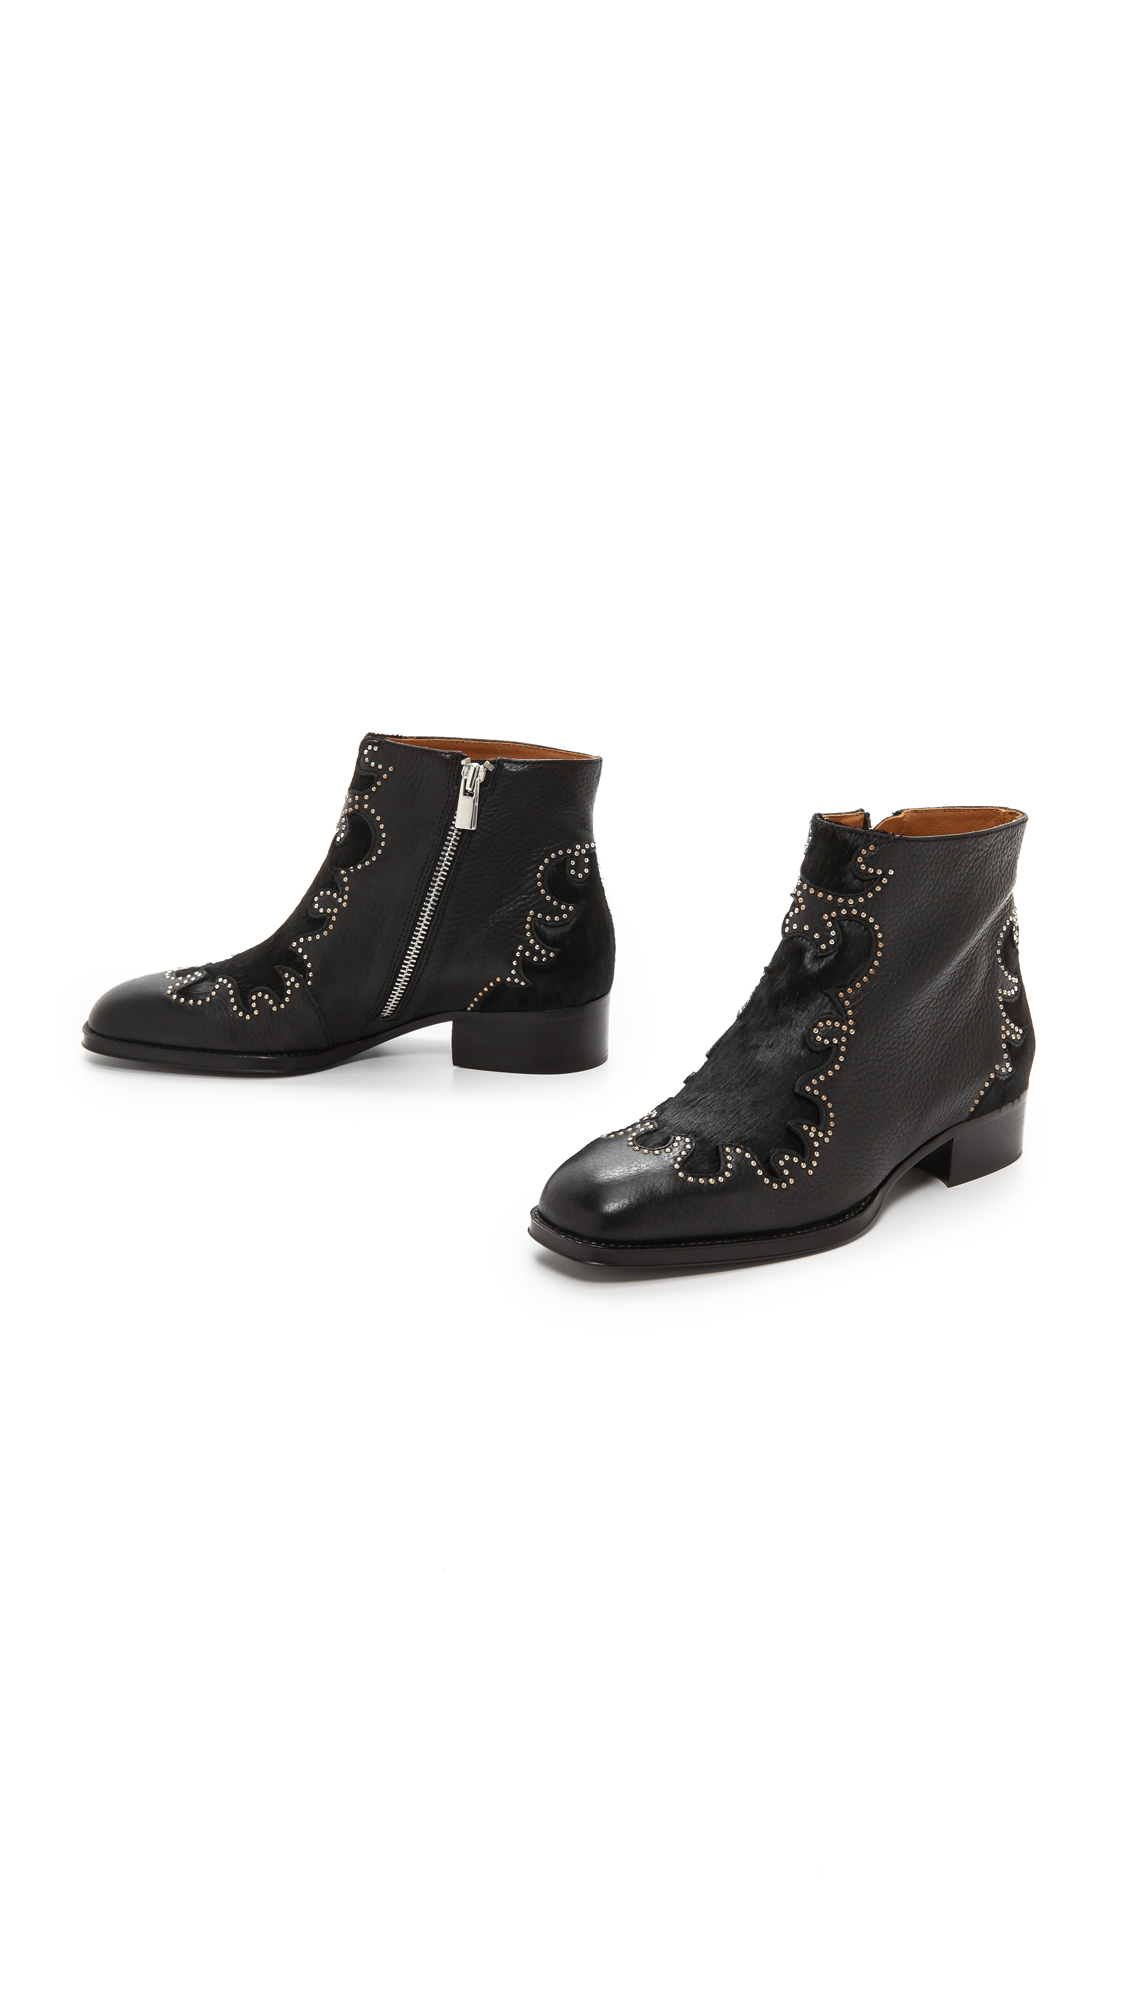 37514fae19a58 See by Chloe Studded Booties | SHOPBOP